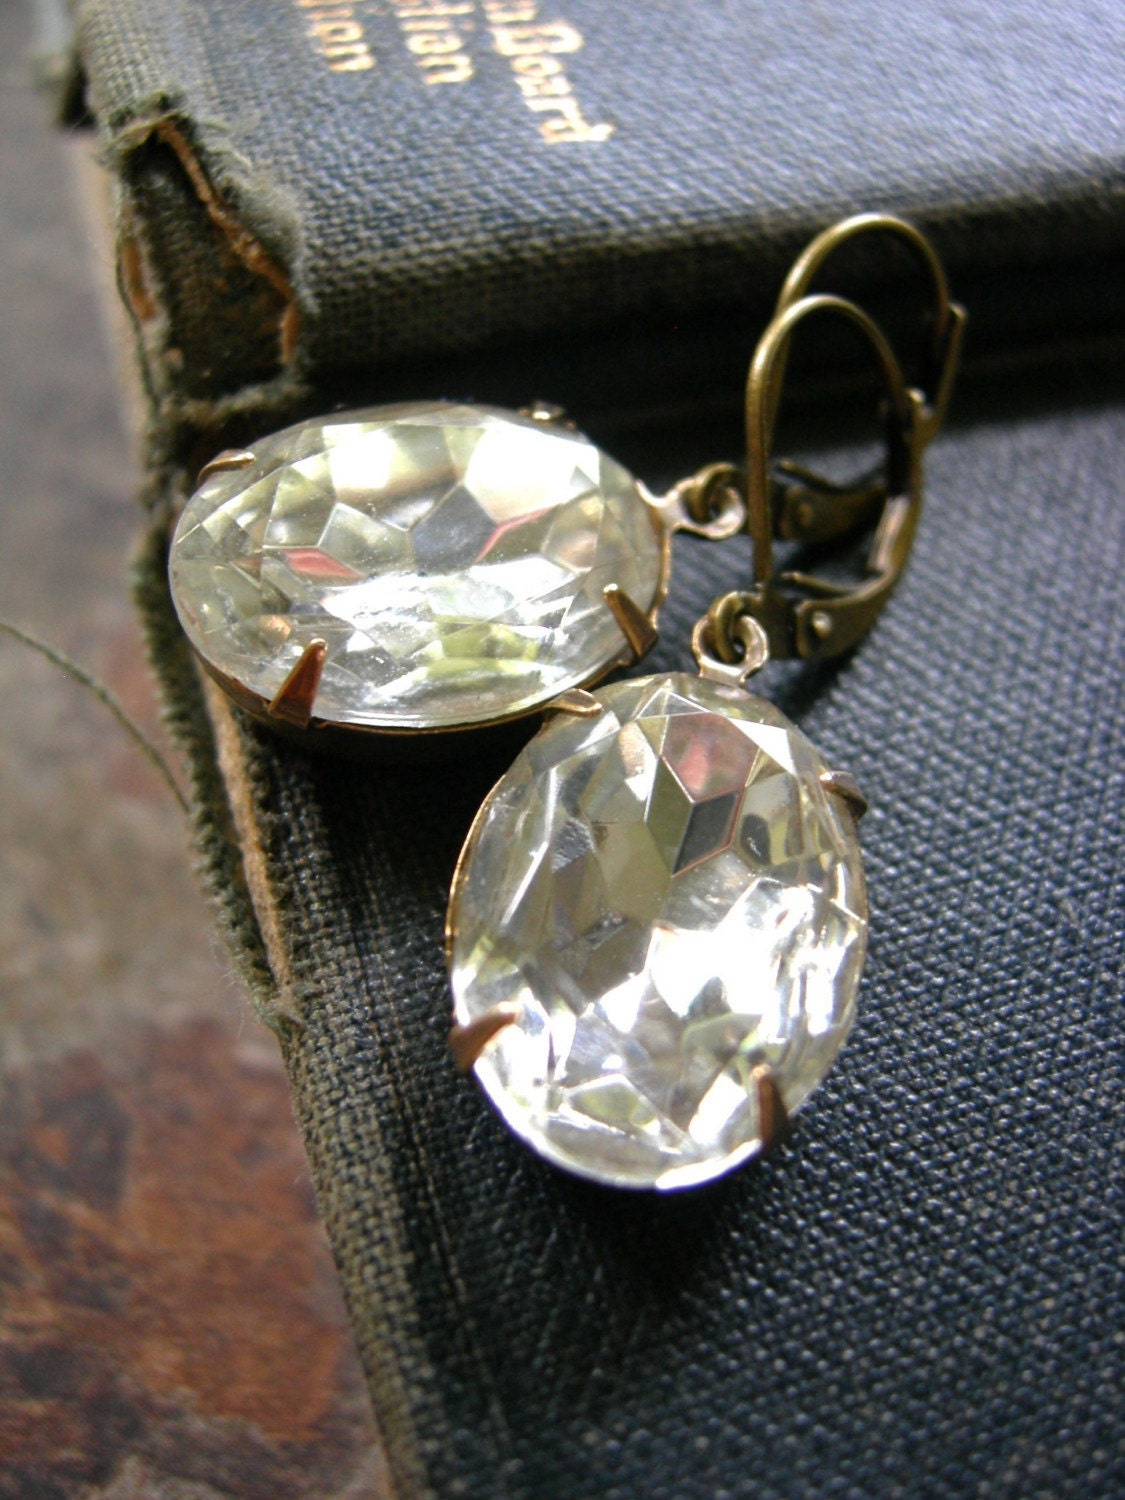 SPRING CLEARANCE - Hollywood Luxe Earrings (Crystal Clear Ovals)